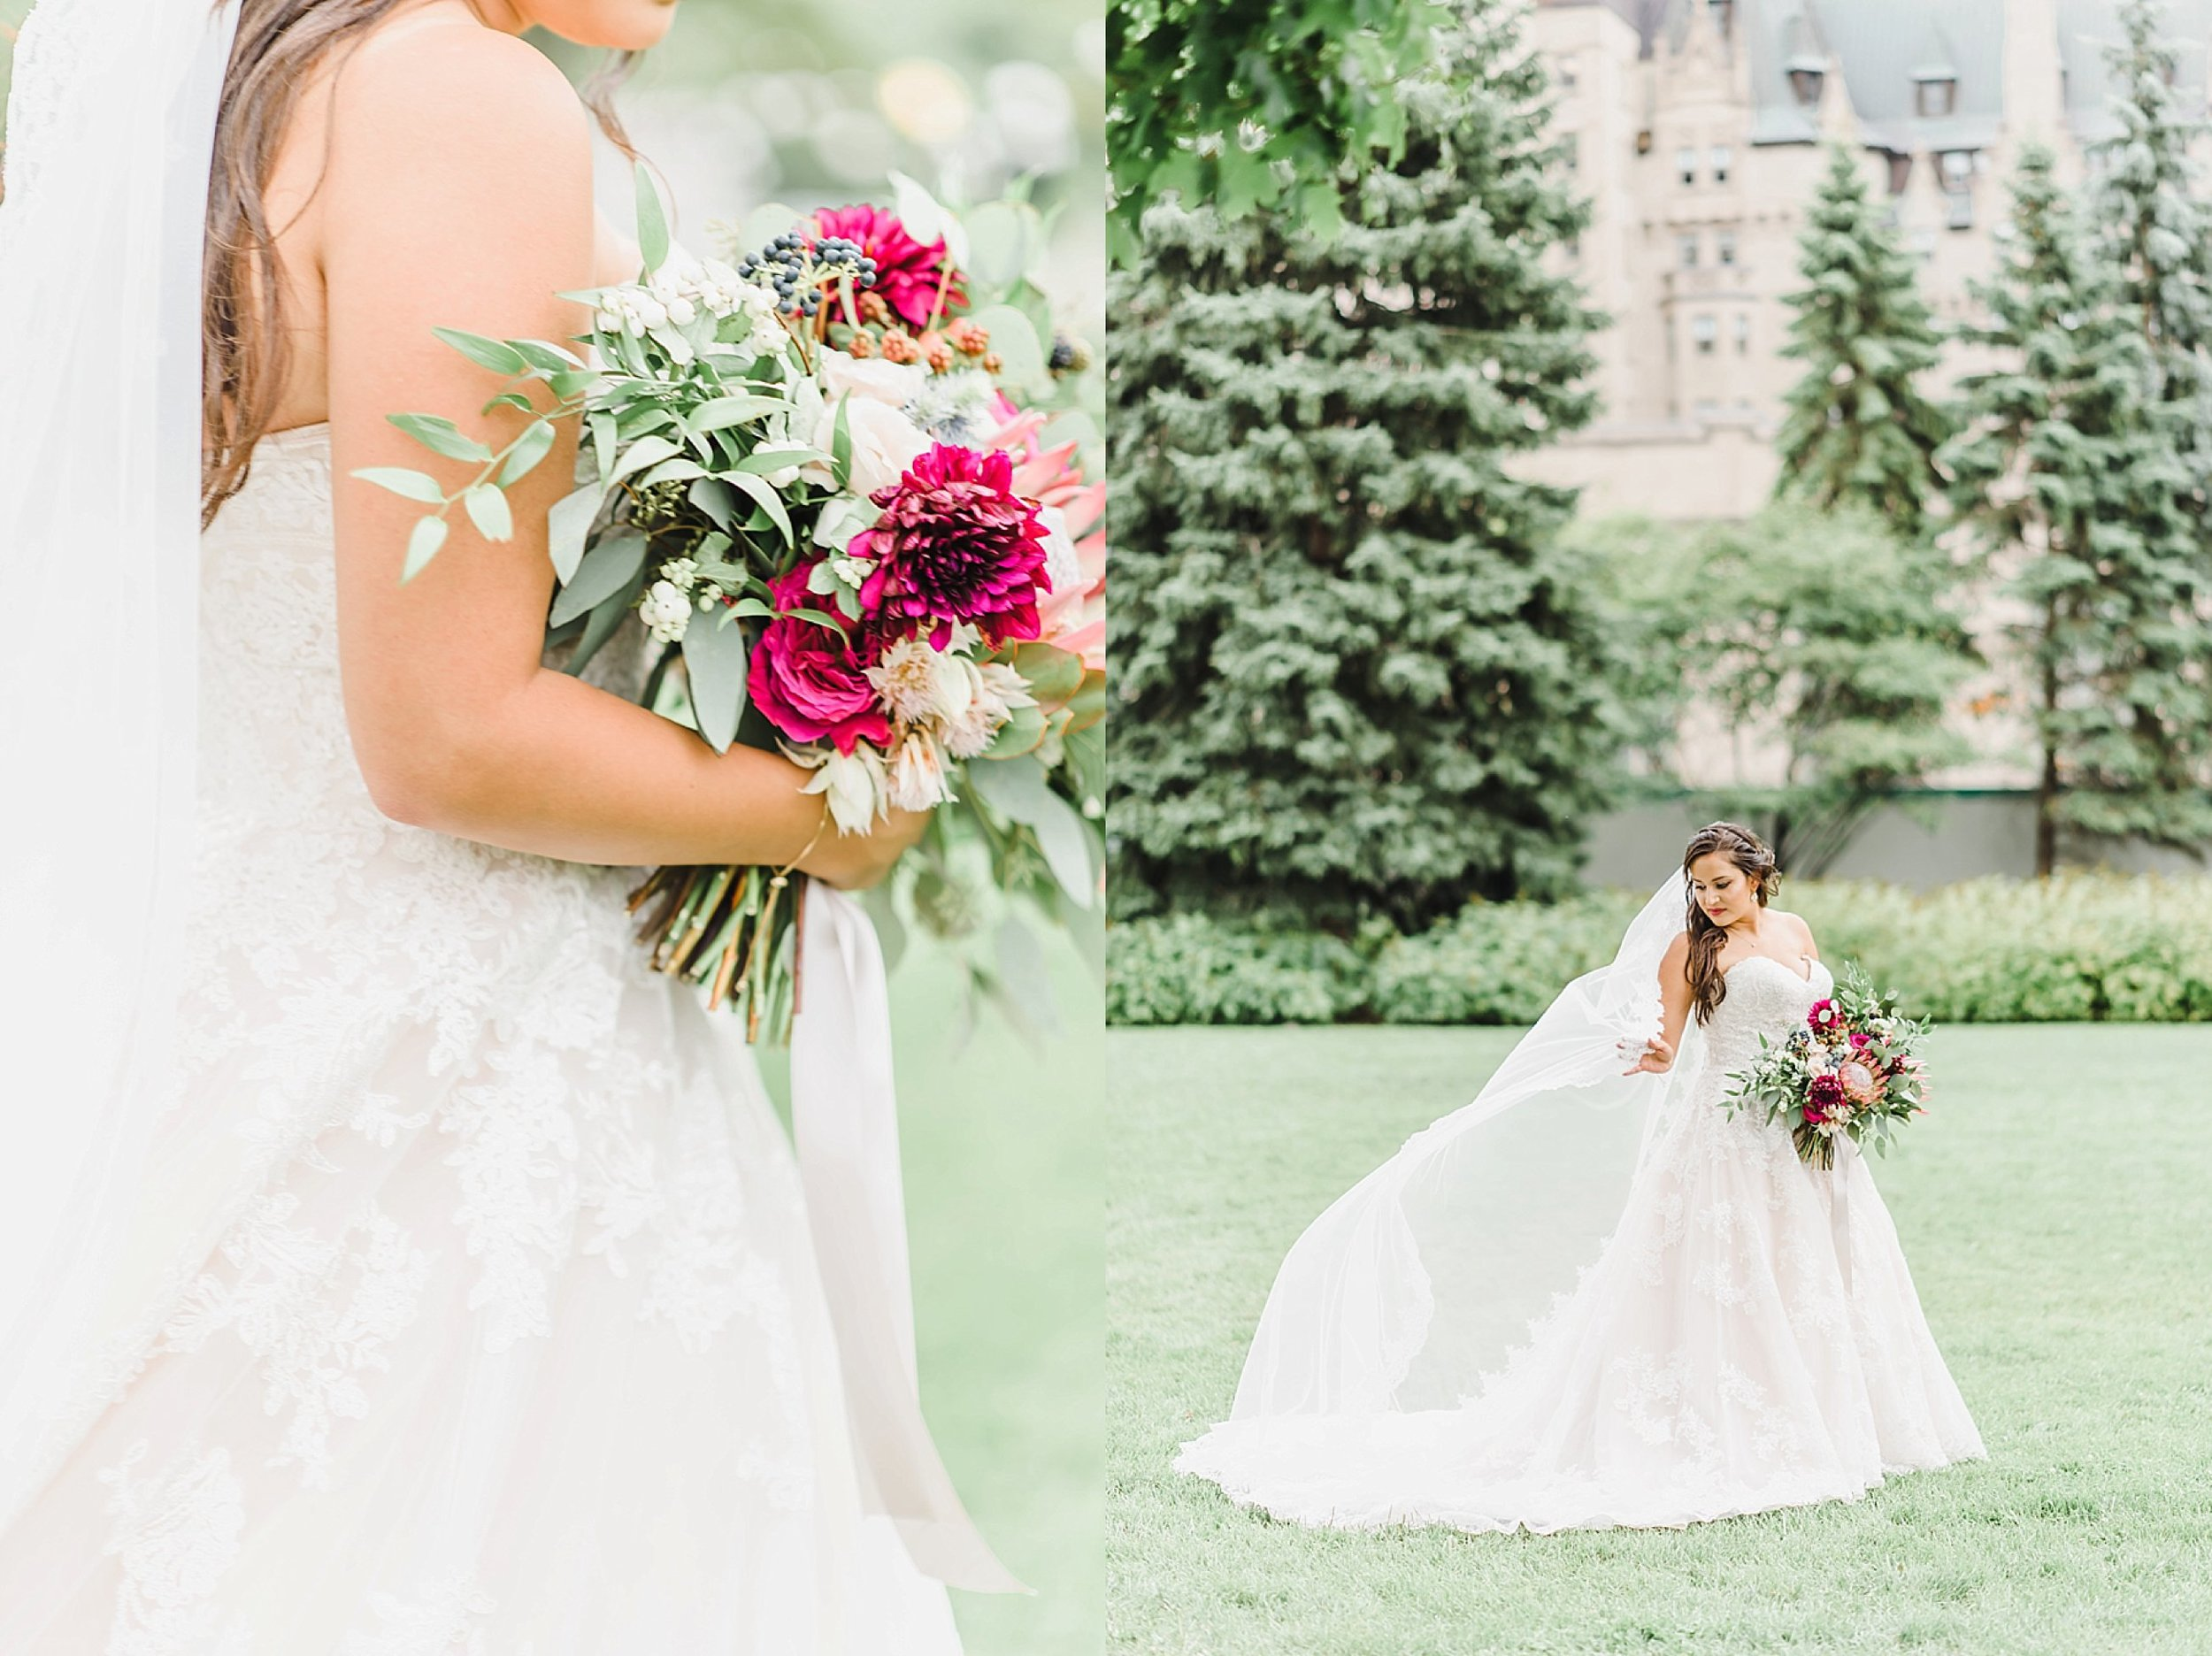 light airy indie fine art ottawa wedding photographer | Ali and Batoul Photography_1620.jpg